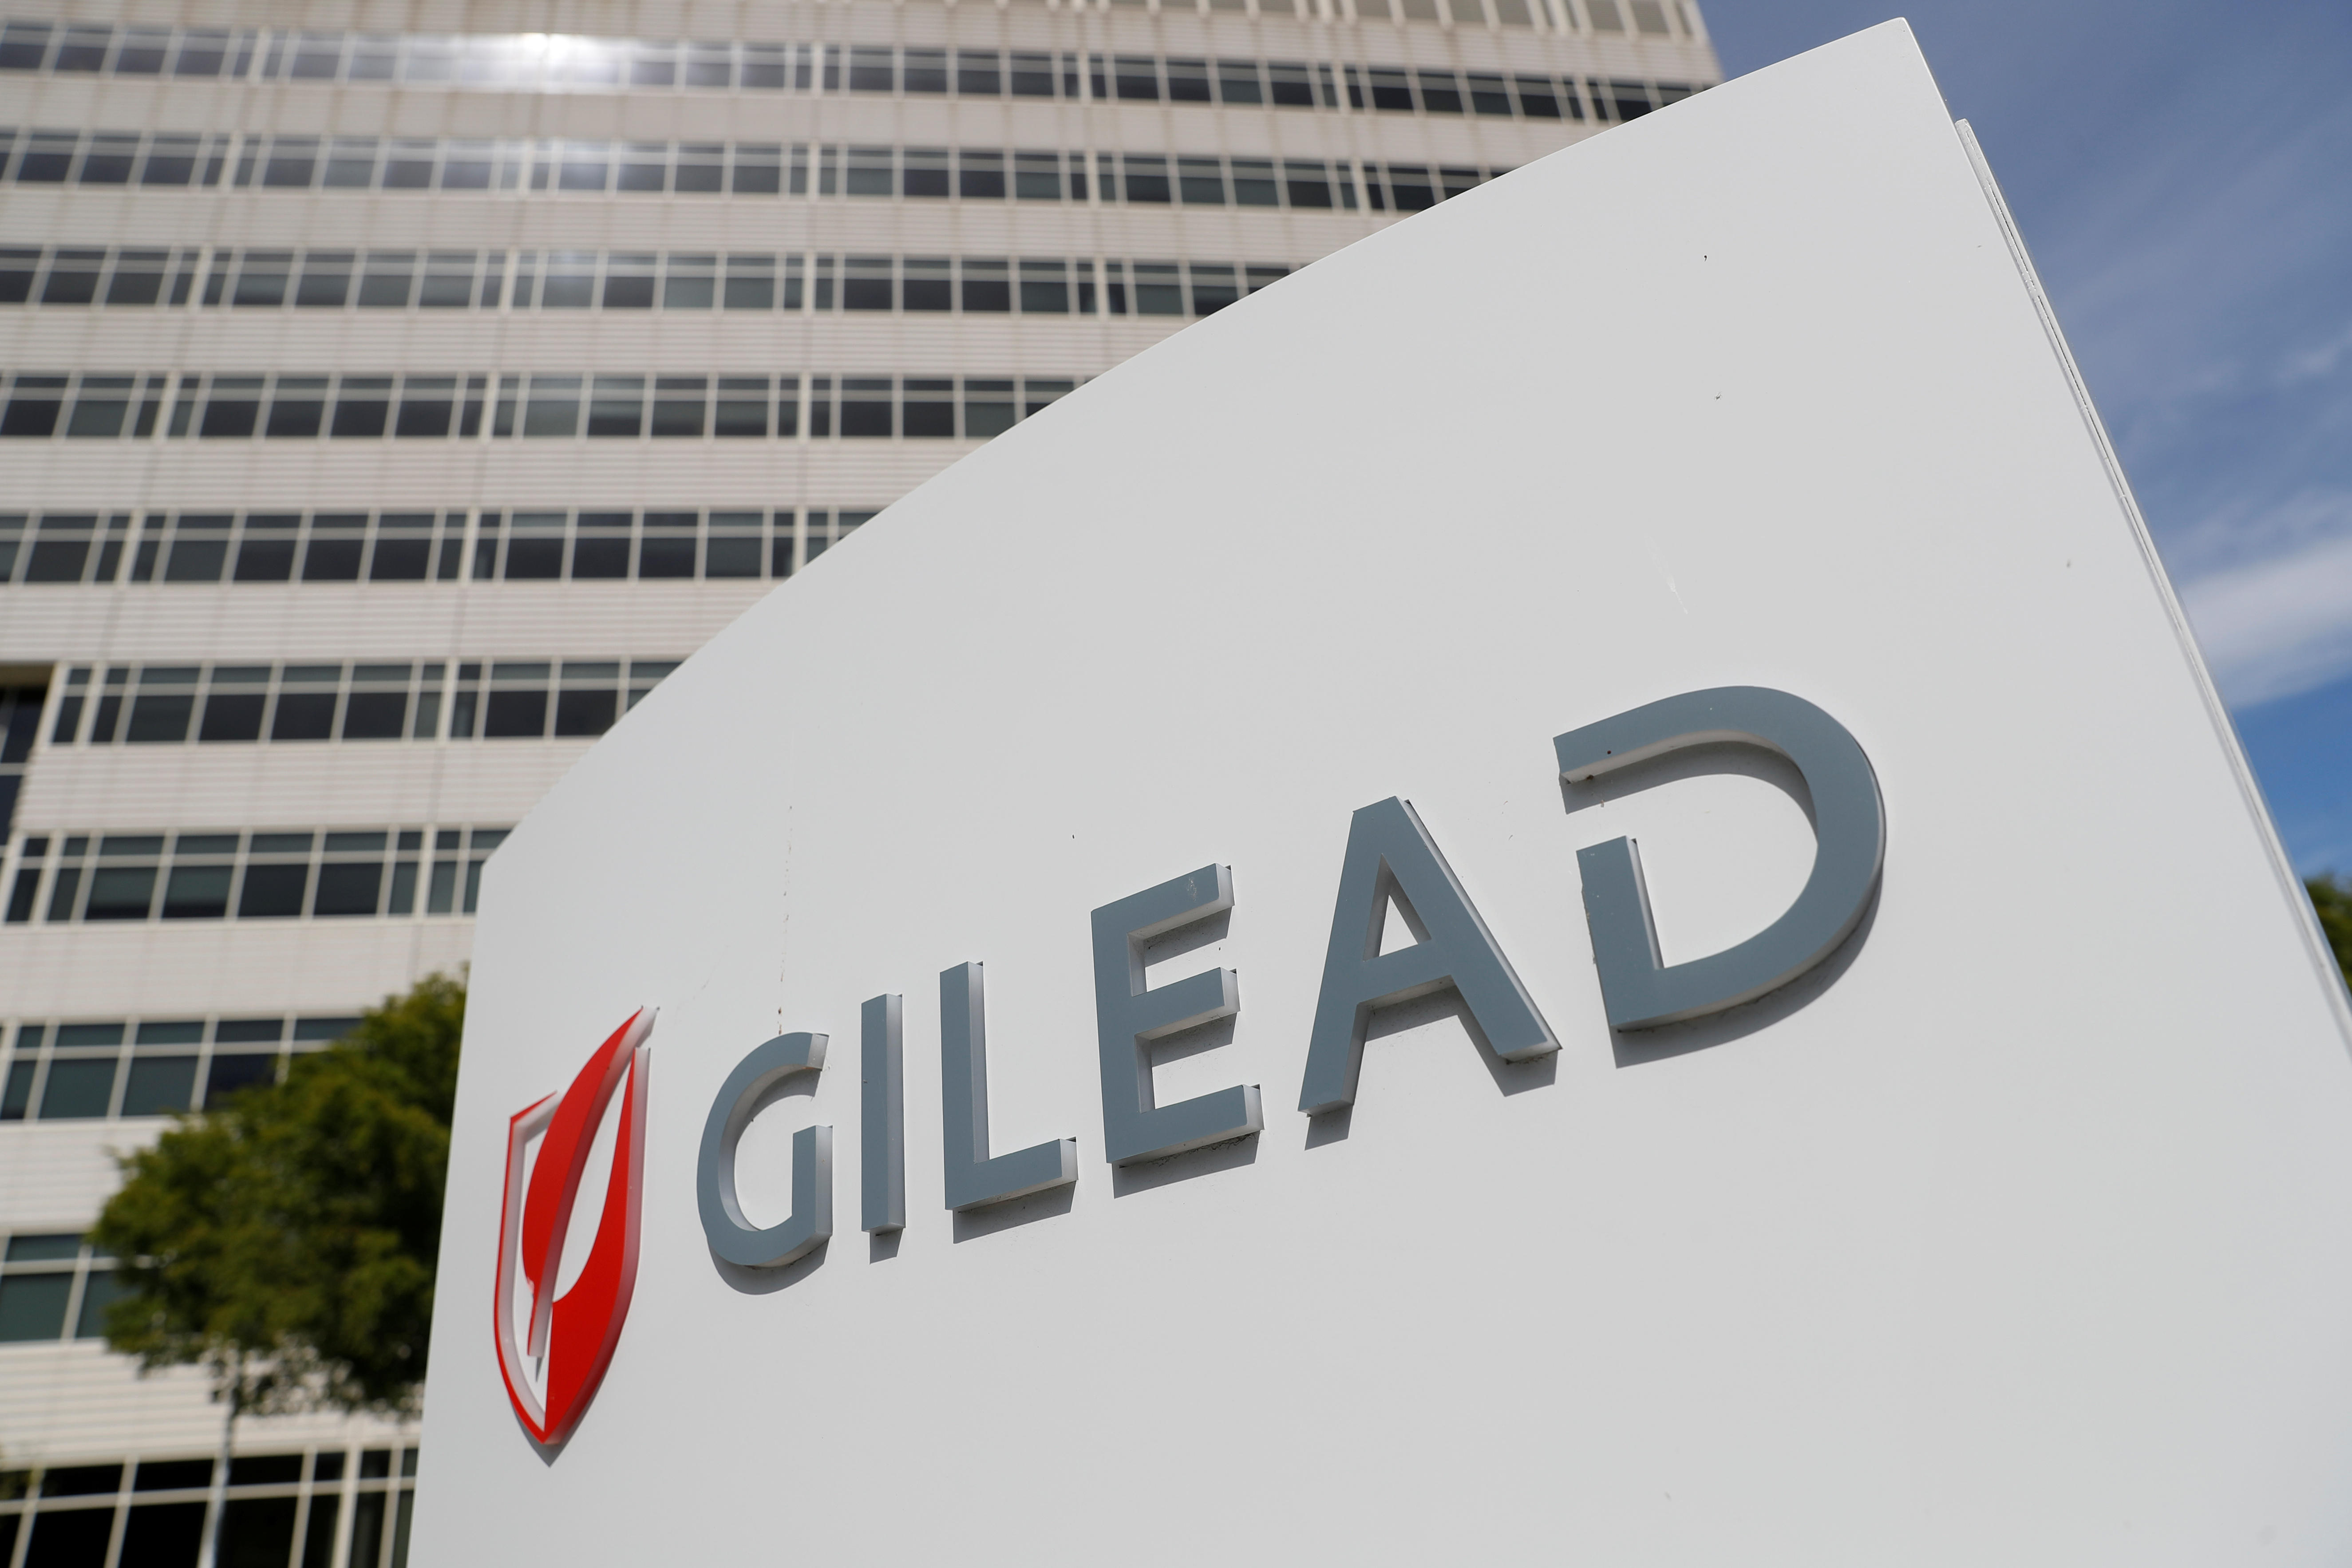 Trump, Fauci see hope with Gilead's drug in coronavirus fight